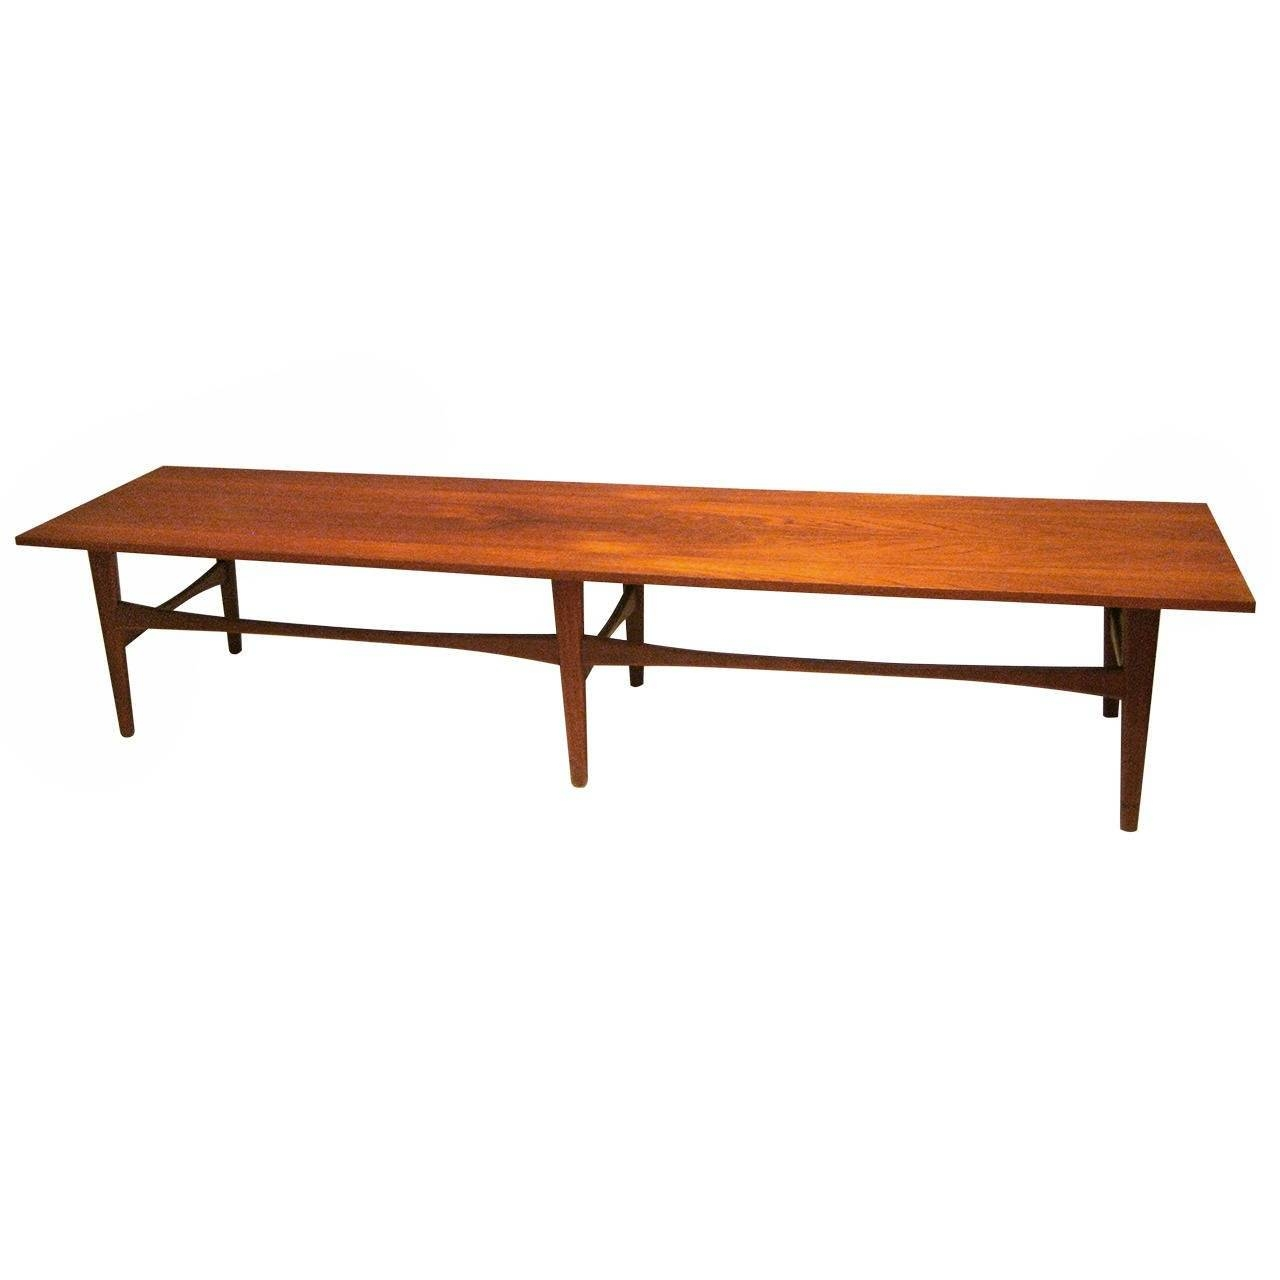 Danish Modern Long Coffee Table Or Bench In Teak At 1Stdibs Throughout Long Coffee Tables (View 6 of 15)